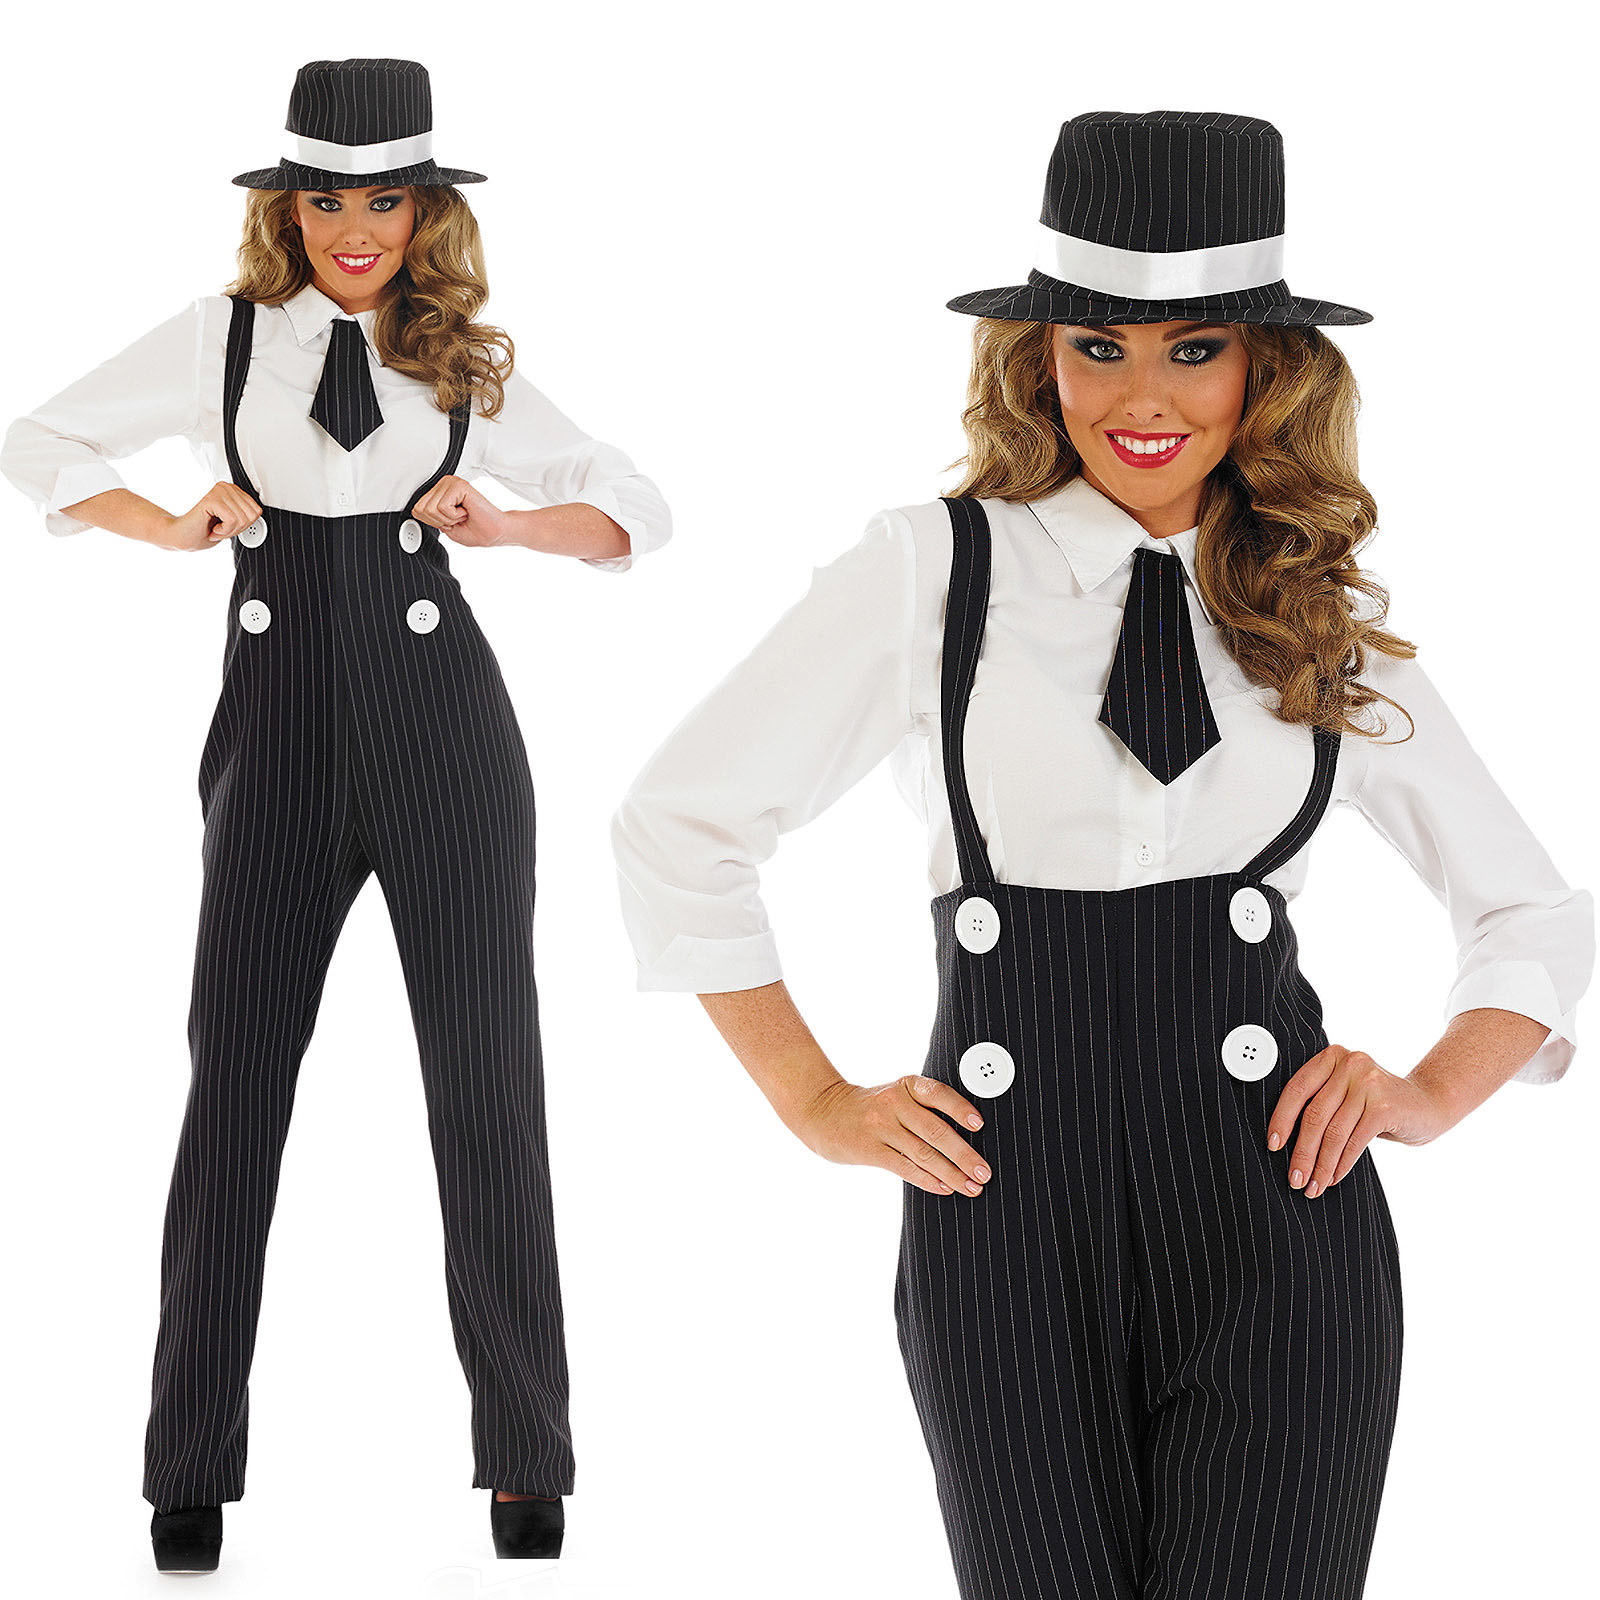 Ladies Black Gangster Pinstripe Costume Dress Suit Costume 20s Pimp